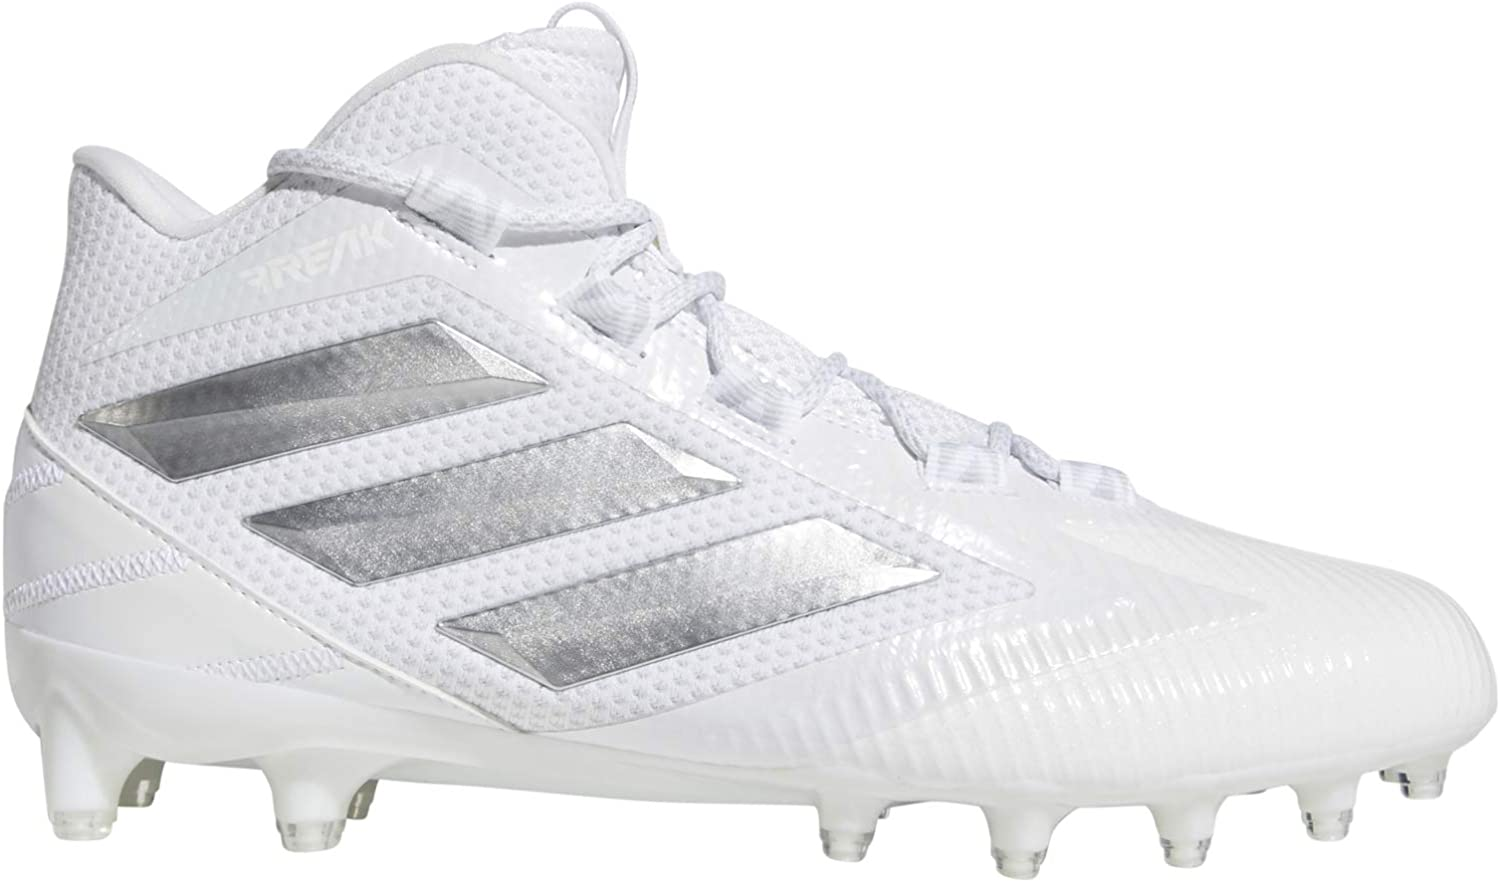 adidas Freak Carbon Mid White/Silver Football Shoes (EE7133)